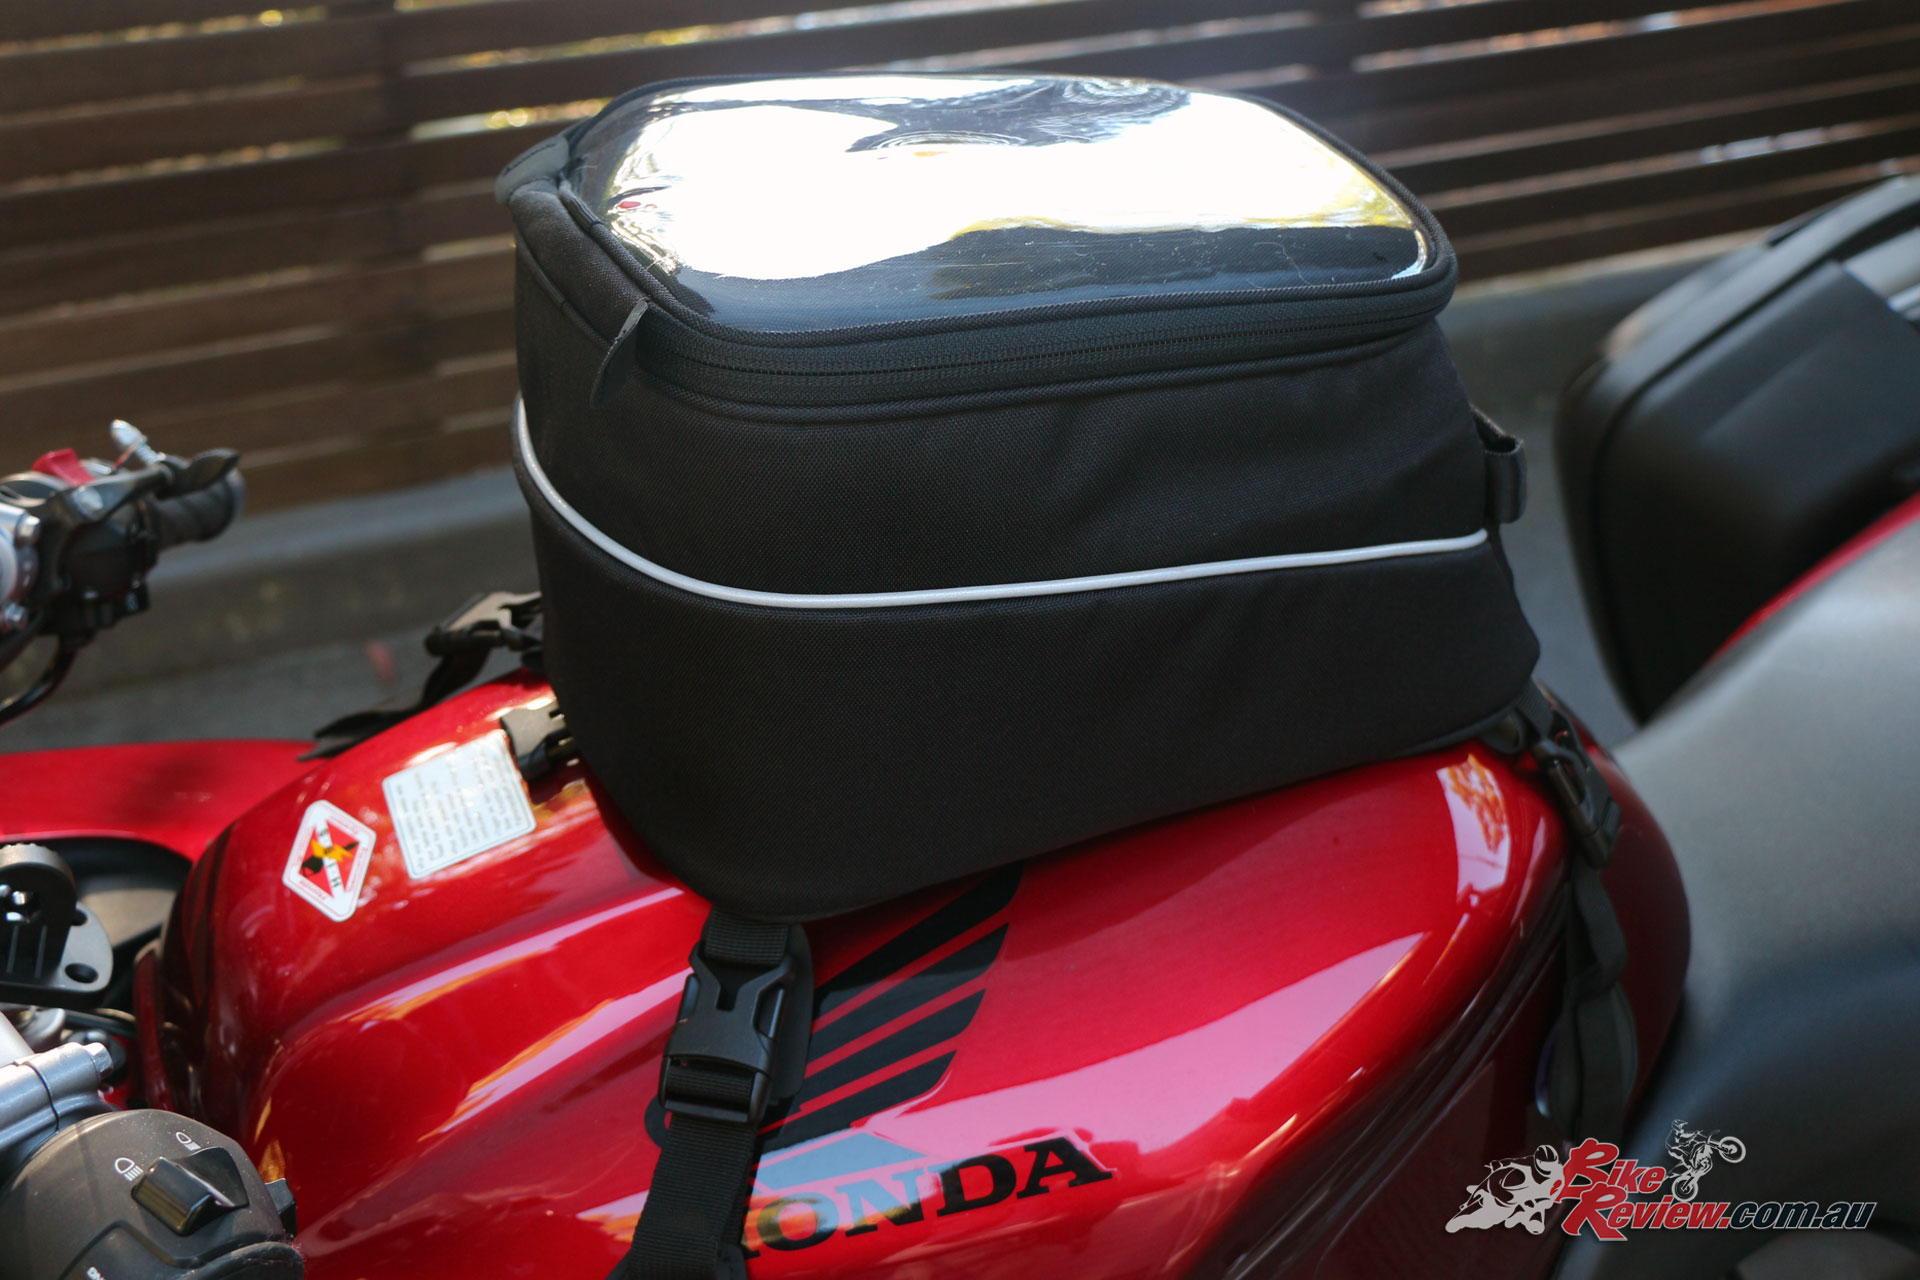 Made of waterproof material the Suki-Moto features a clear upper pocket for a map, GPS or mobile.